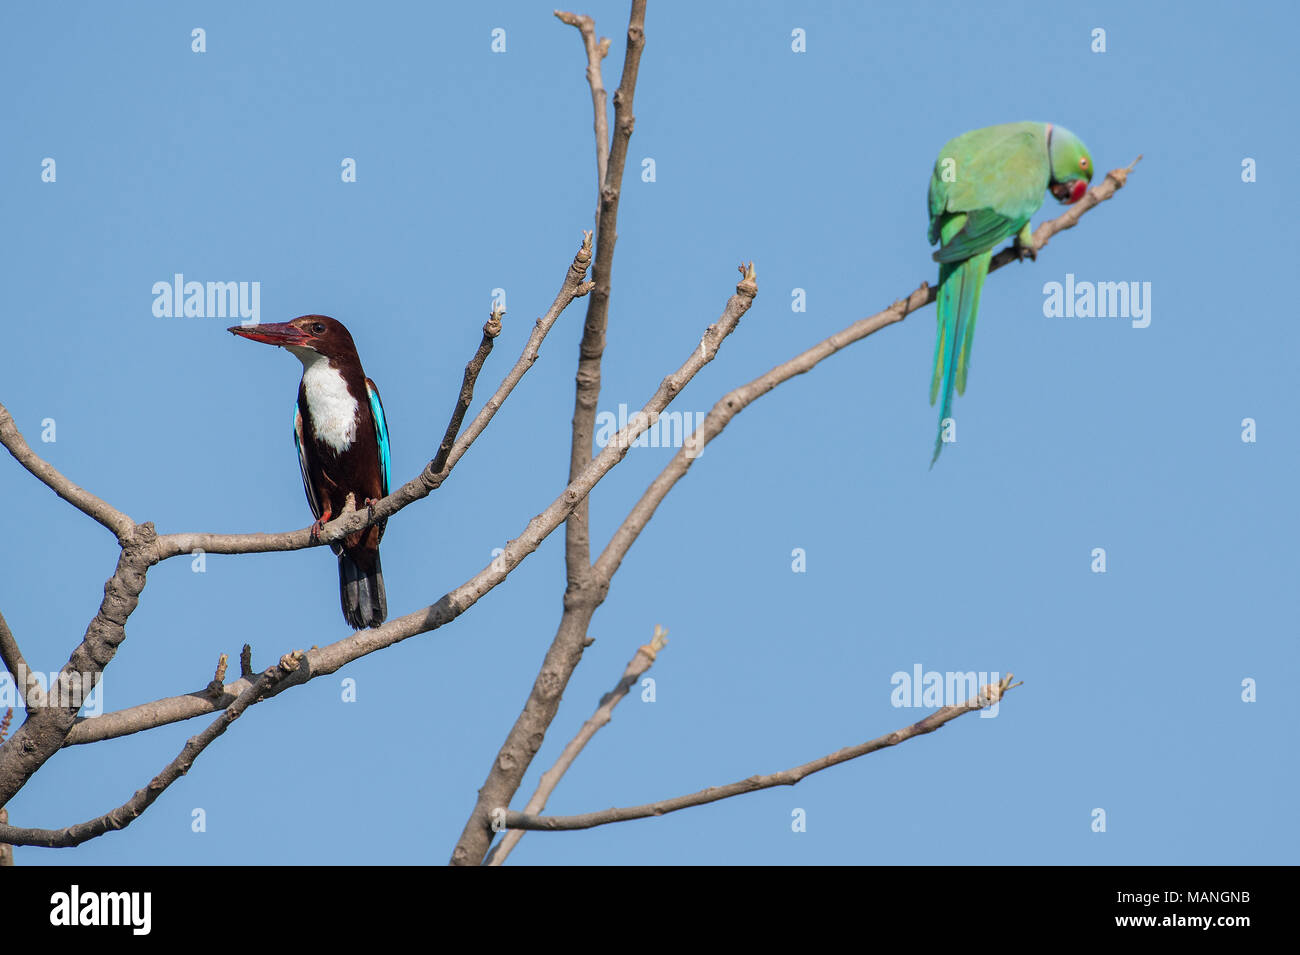 Bird: White Throated Kingfisher and Rose Ringed Parakeet  Perched on Tree Stock Photo